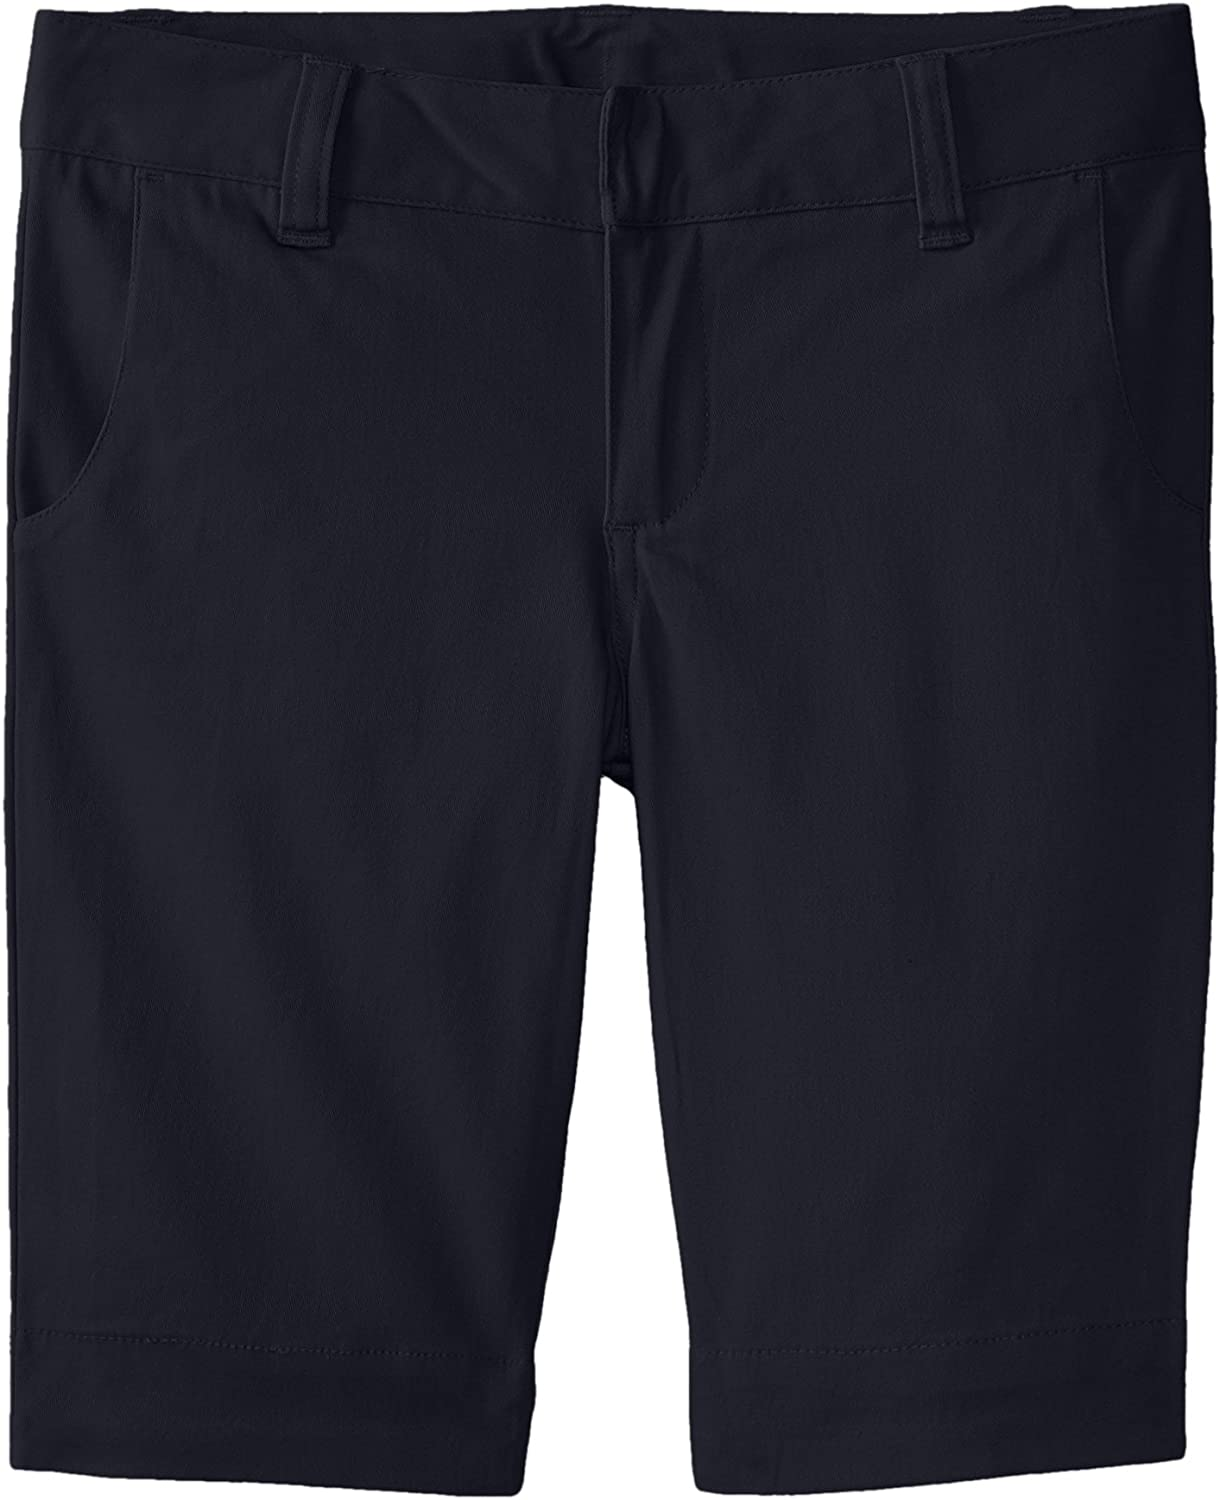 Lee Uniforms Little Girls  Stretch Twill Bermuda Short